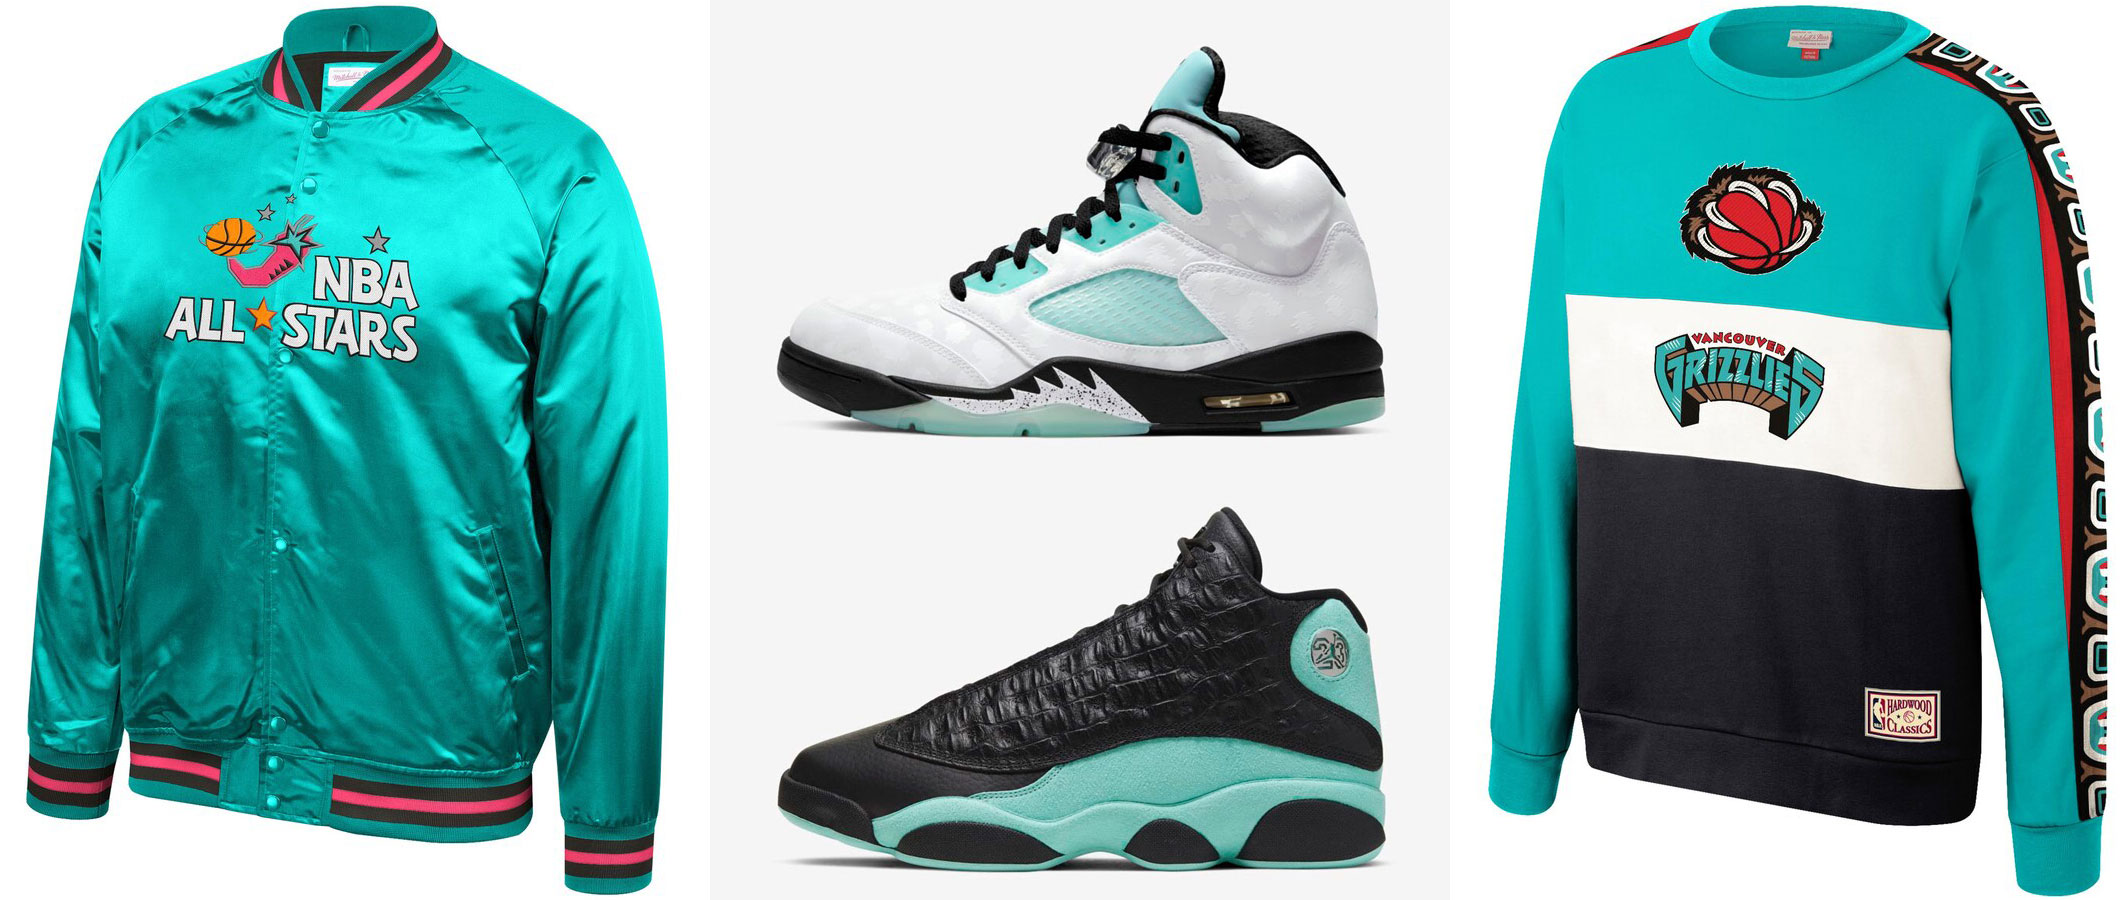 island-green-air-jordan-retro-nba-clothing-match